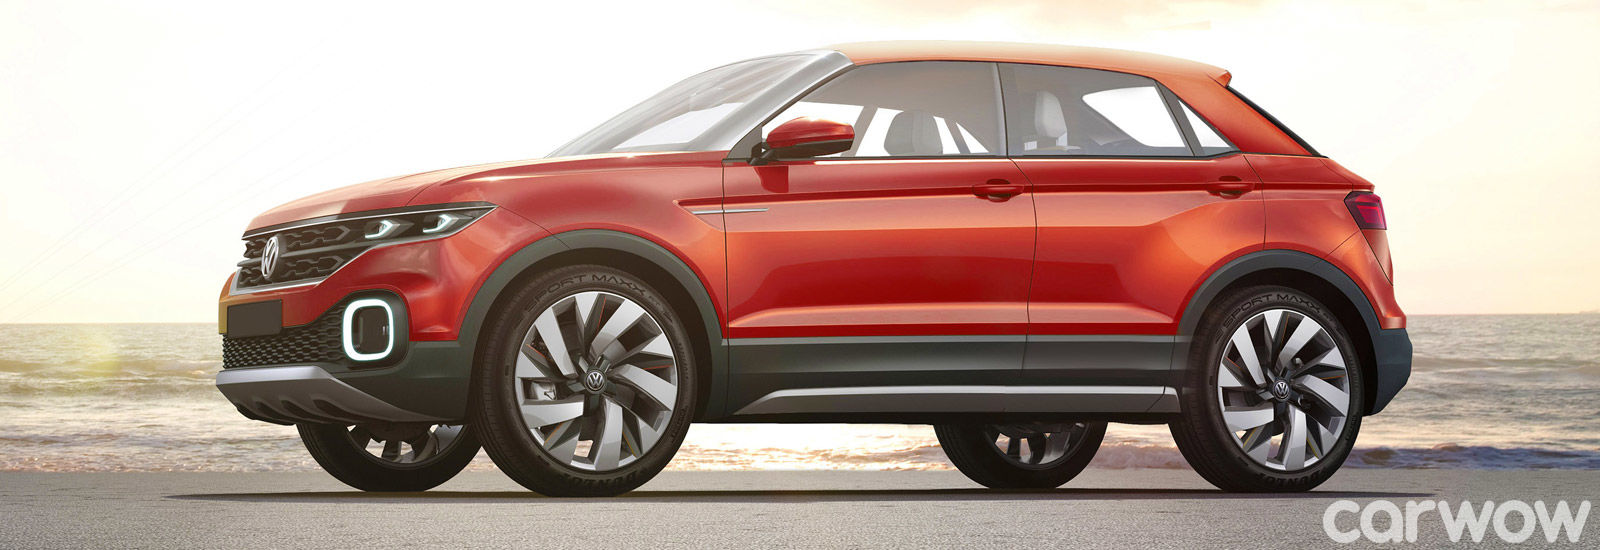 2018 Vw T Roc Price Specs And Release Date Carwow